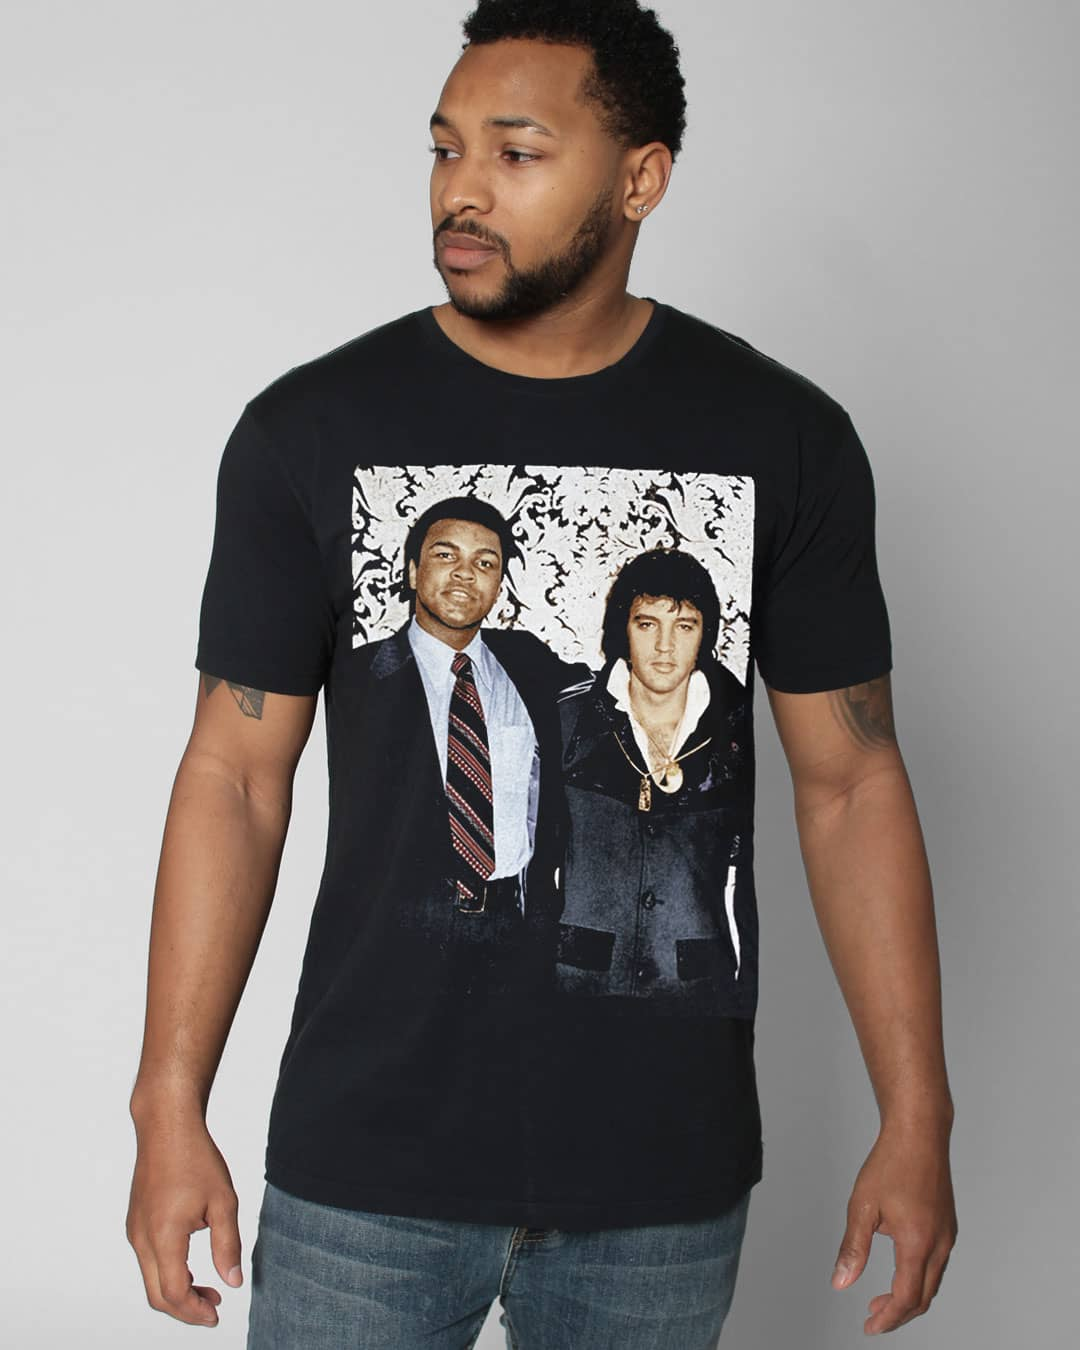 Ali & Elvis Photo Portrait Tee - Roots of Inc dba Roots of Fight